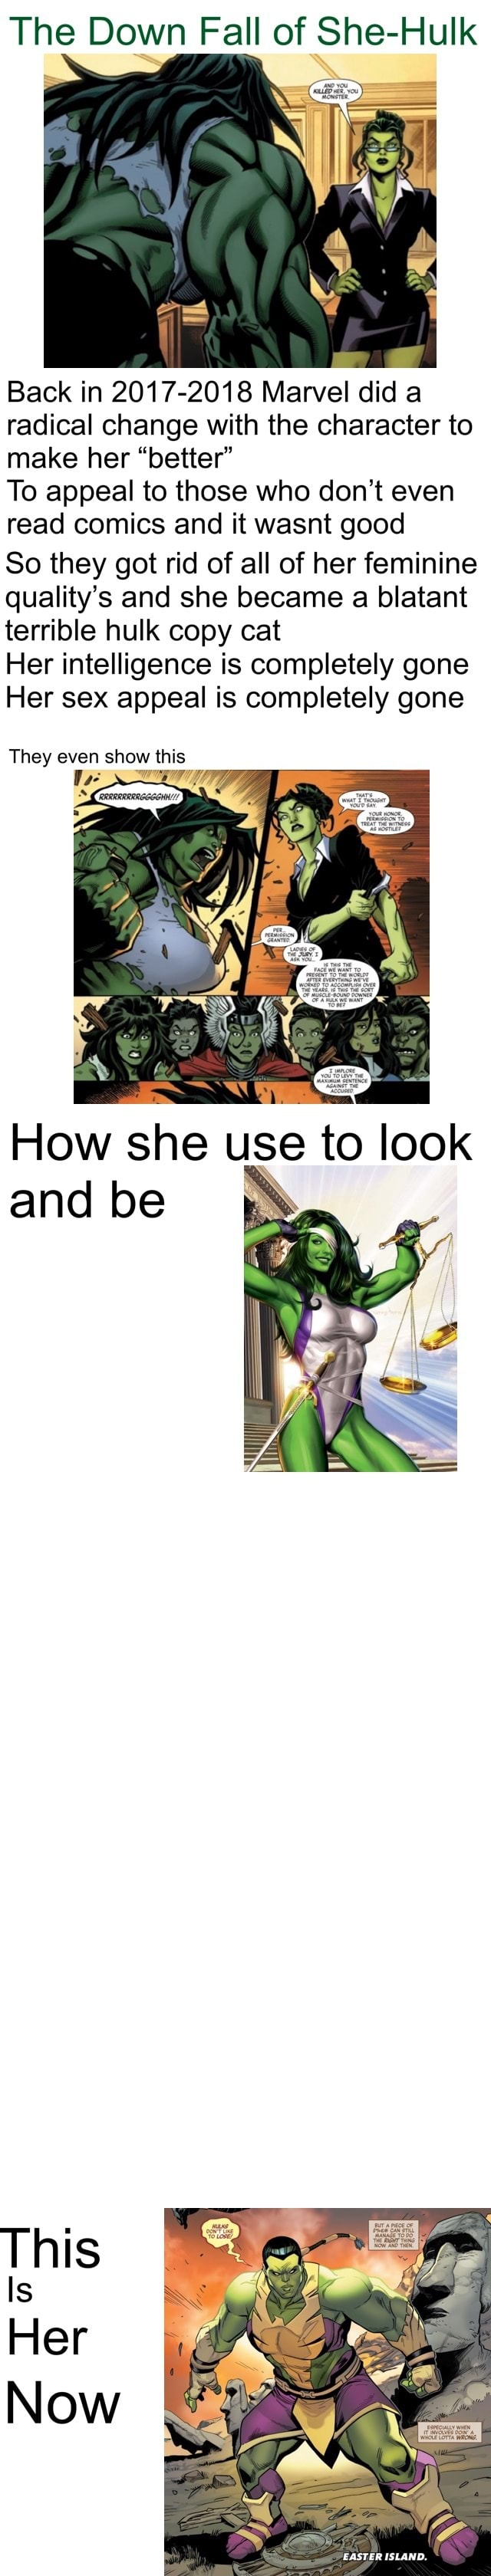 The Down Fall of She Hulk Back in 2017 2018 Marvel did a radical change with the character to make her better To appeal to those who do not even read comics and it wasnt good So they got rid of all of her feminine quality's and she became a blatant terrible hulk copy cat Her intelligence is completely gone Her sex appeal is completely gone They even show this and be Is Now EASTER ISLAND memes